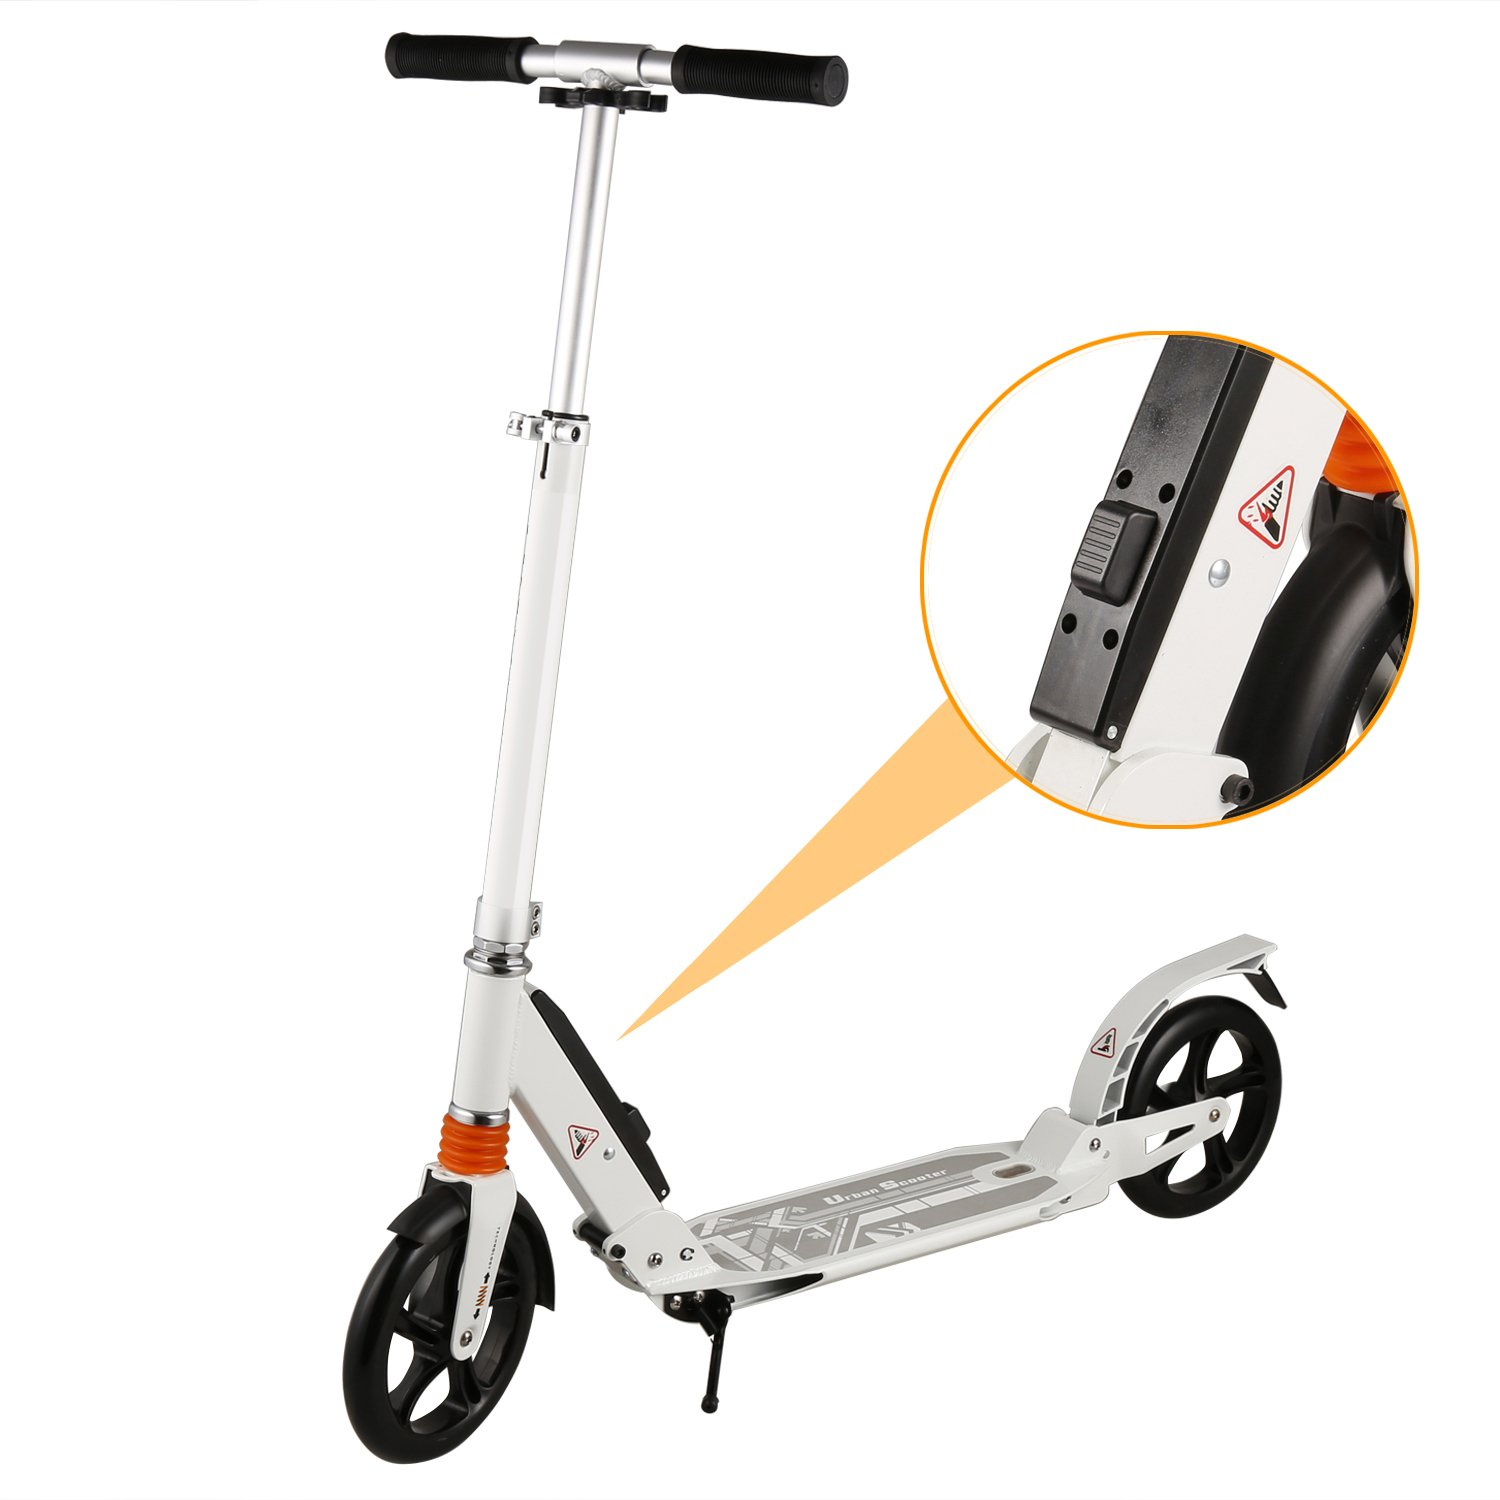 Yuebo Folding Adult Kick Scooter with Dual Suspension Shocks and 2 Big 200mm Wheels